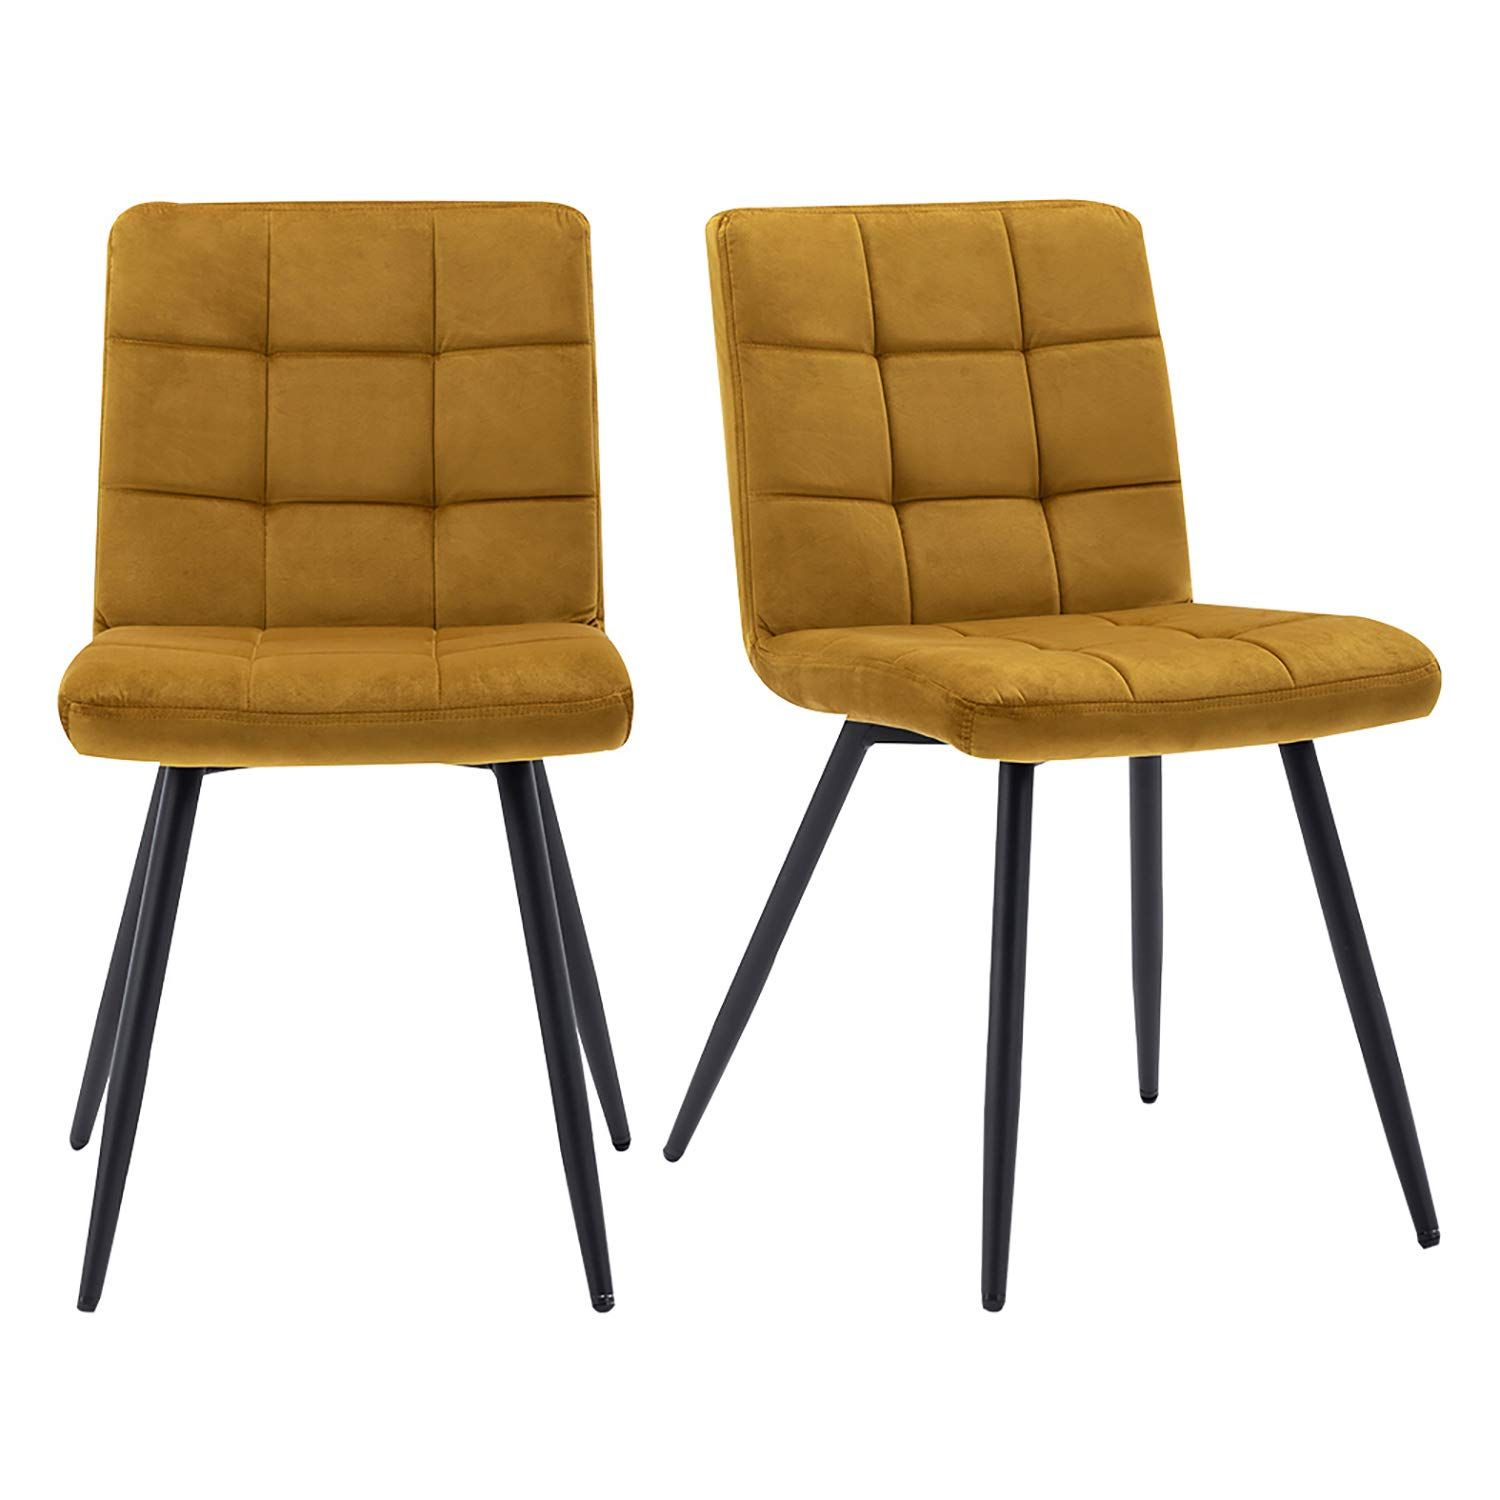 HNNHOME® Set of 2 x Cubana Kitchen Dining Upholstered Chair Lounge Living Room Chair Soft Velvet Reception Pub Restaurant Chair with Strong Black Metal Legs (Dark Grey, Fabric)